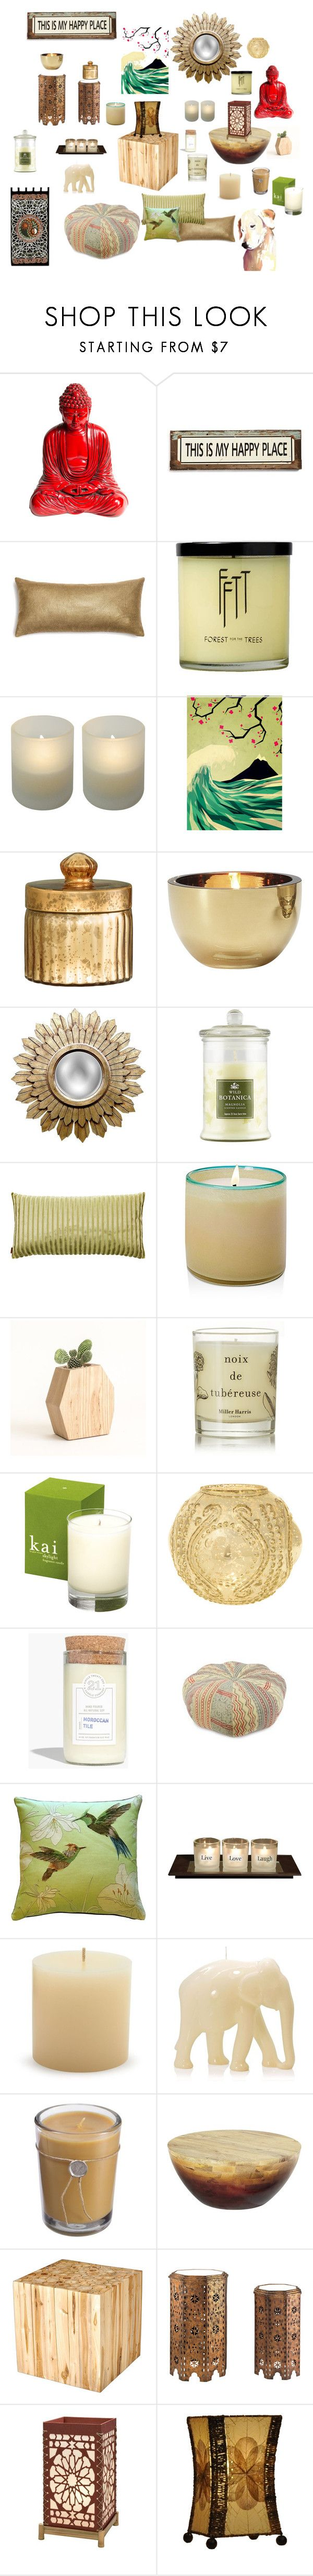 """Calm Meditation Room Decor Ideas"" by missmissymermaid on Polyvore featuring interior, interiors, interior design, home, home decor, interior decorating, Poncho & Goldstein, Monde Mosaic, H&M and LSA International"